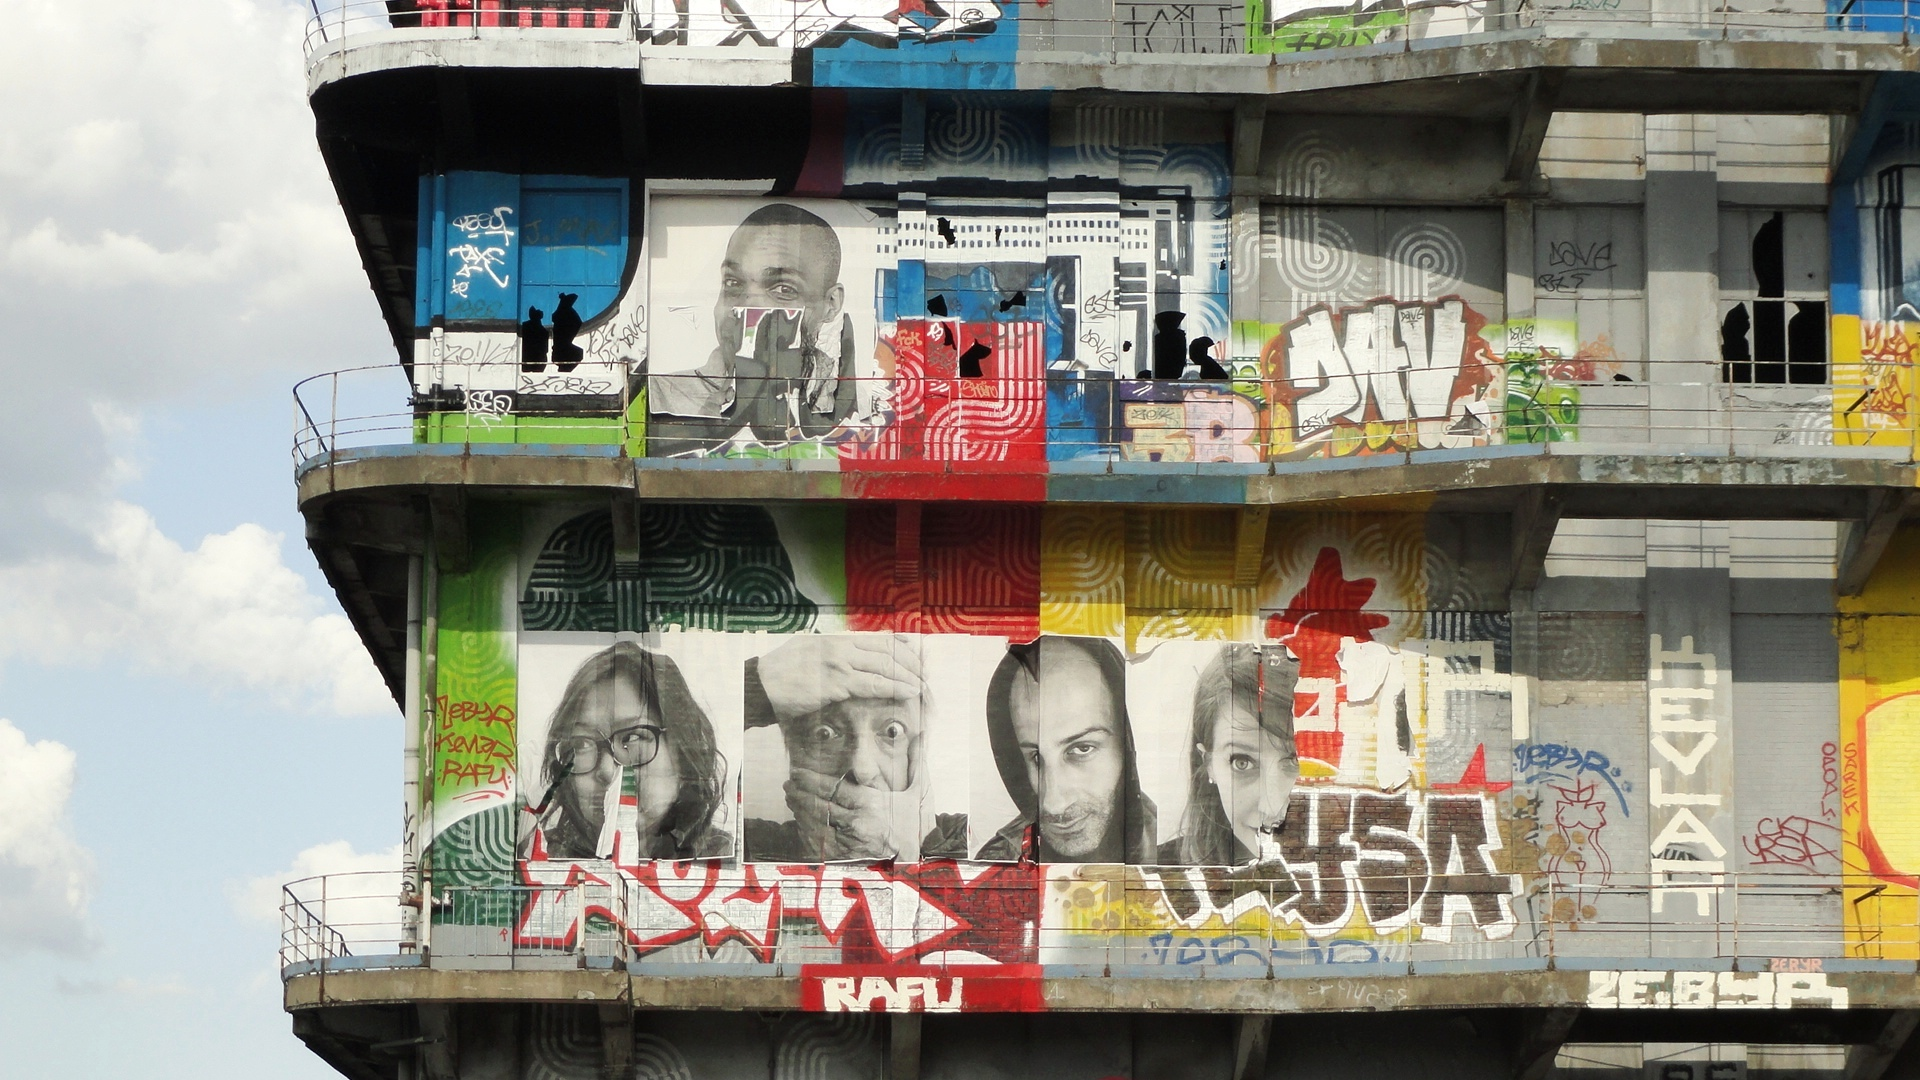 Street art au Bâtiment des Douanes, Pantin - Collages de JR